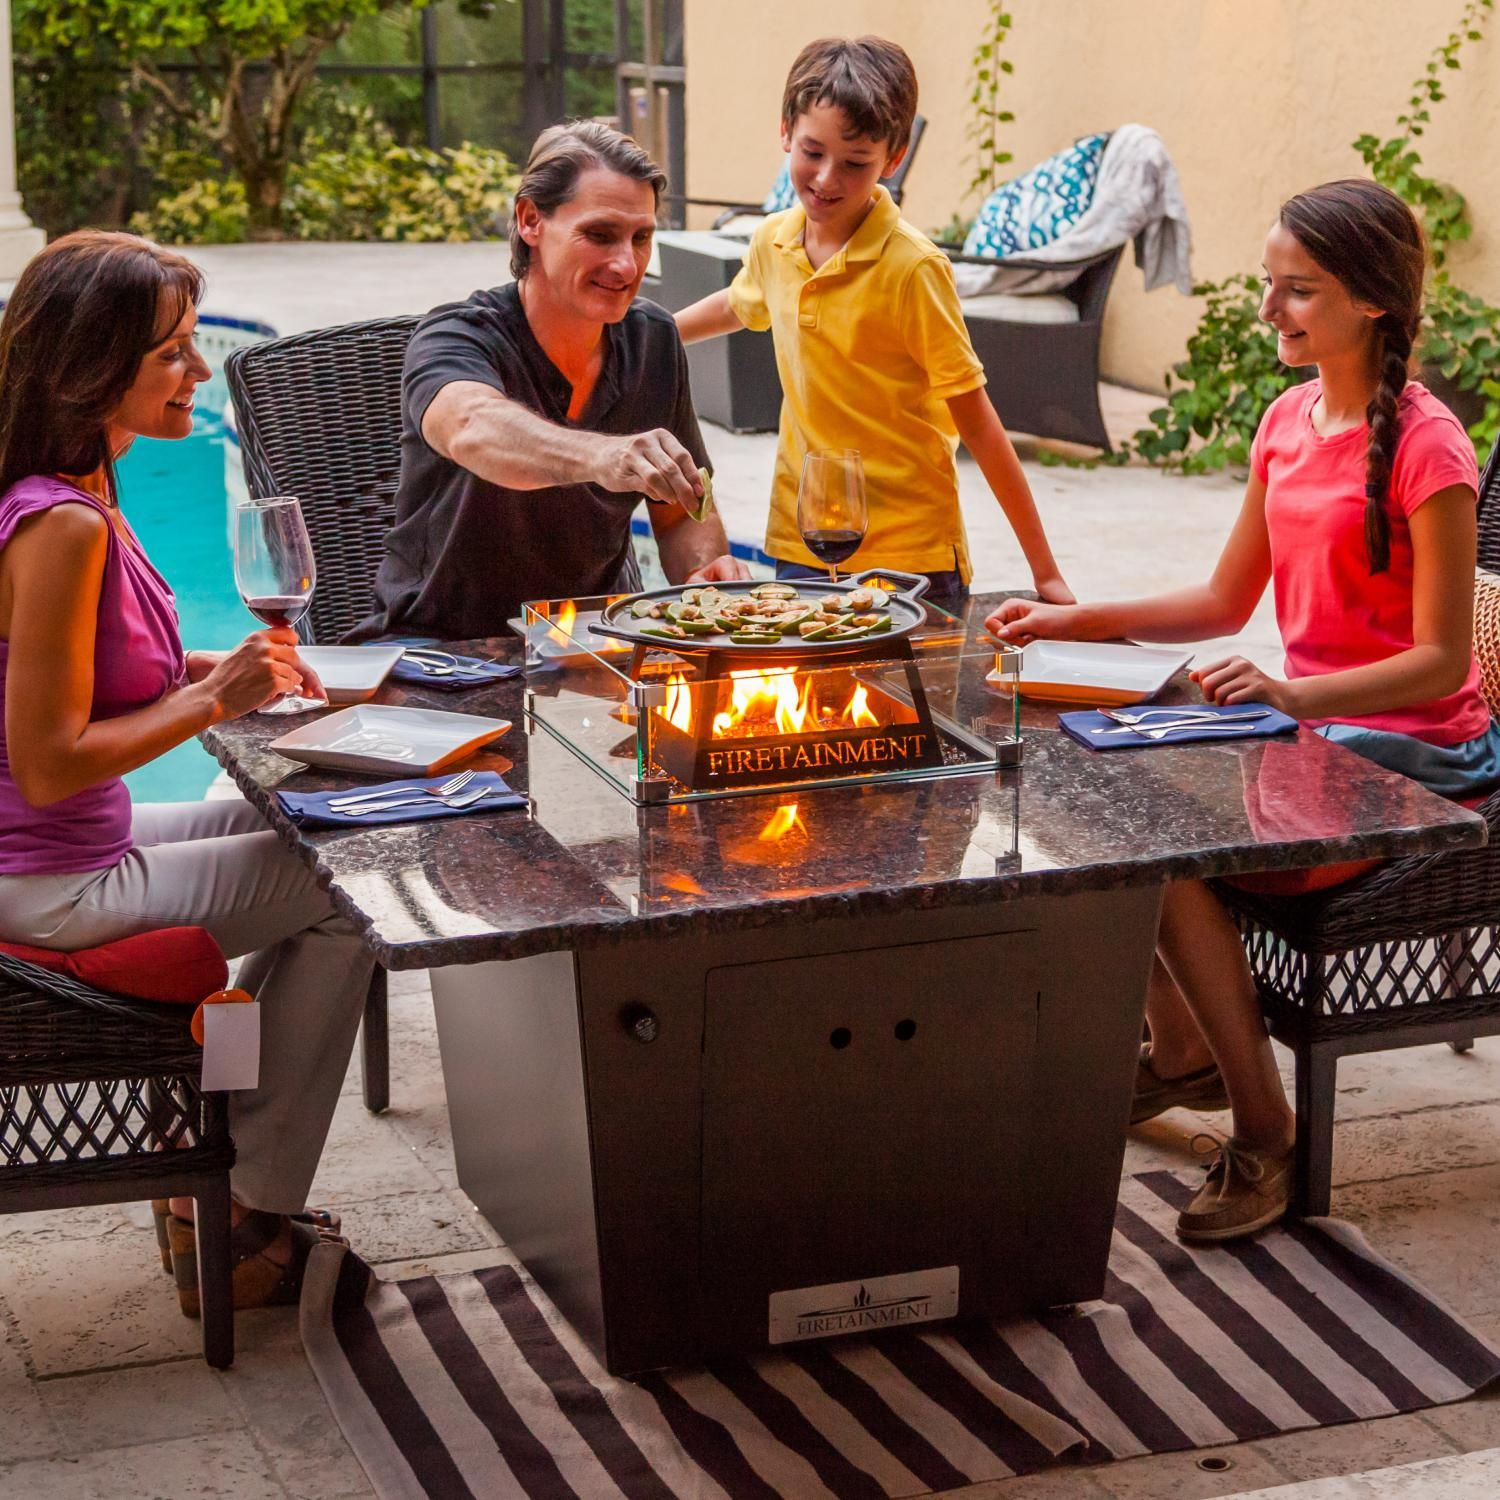 4a43b71914a0b6304c9a316cf1d80b7e Top Result 50 Awesome Fire Pit Store Photography 2018 Hzt6